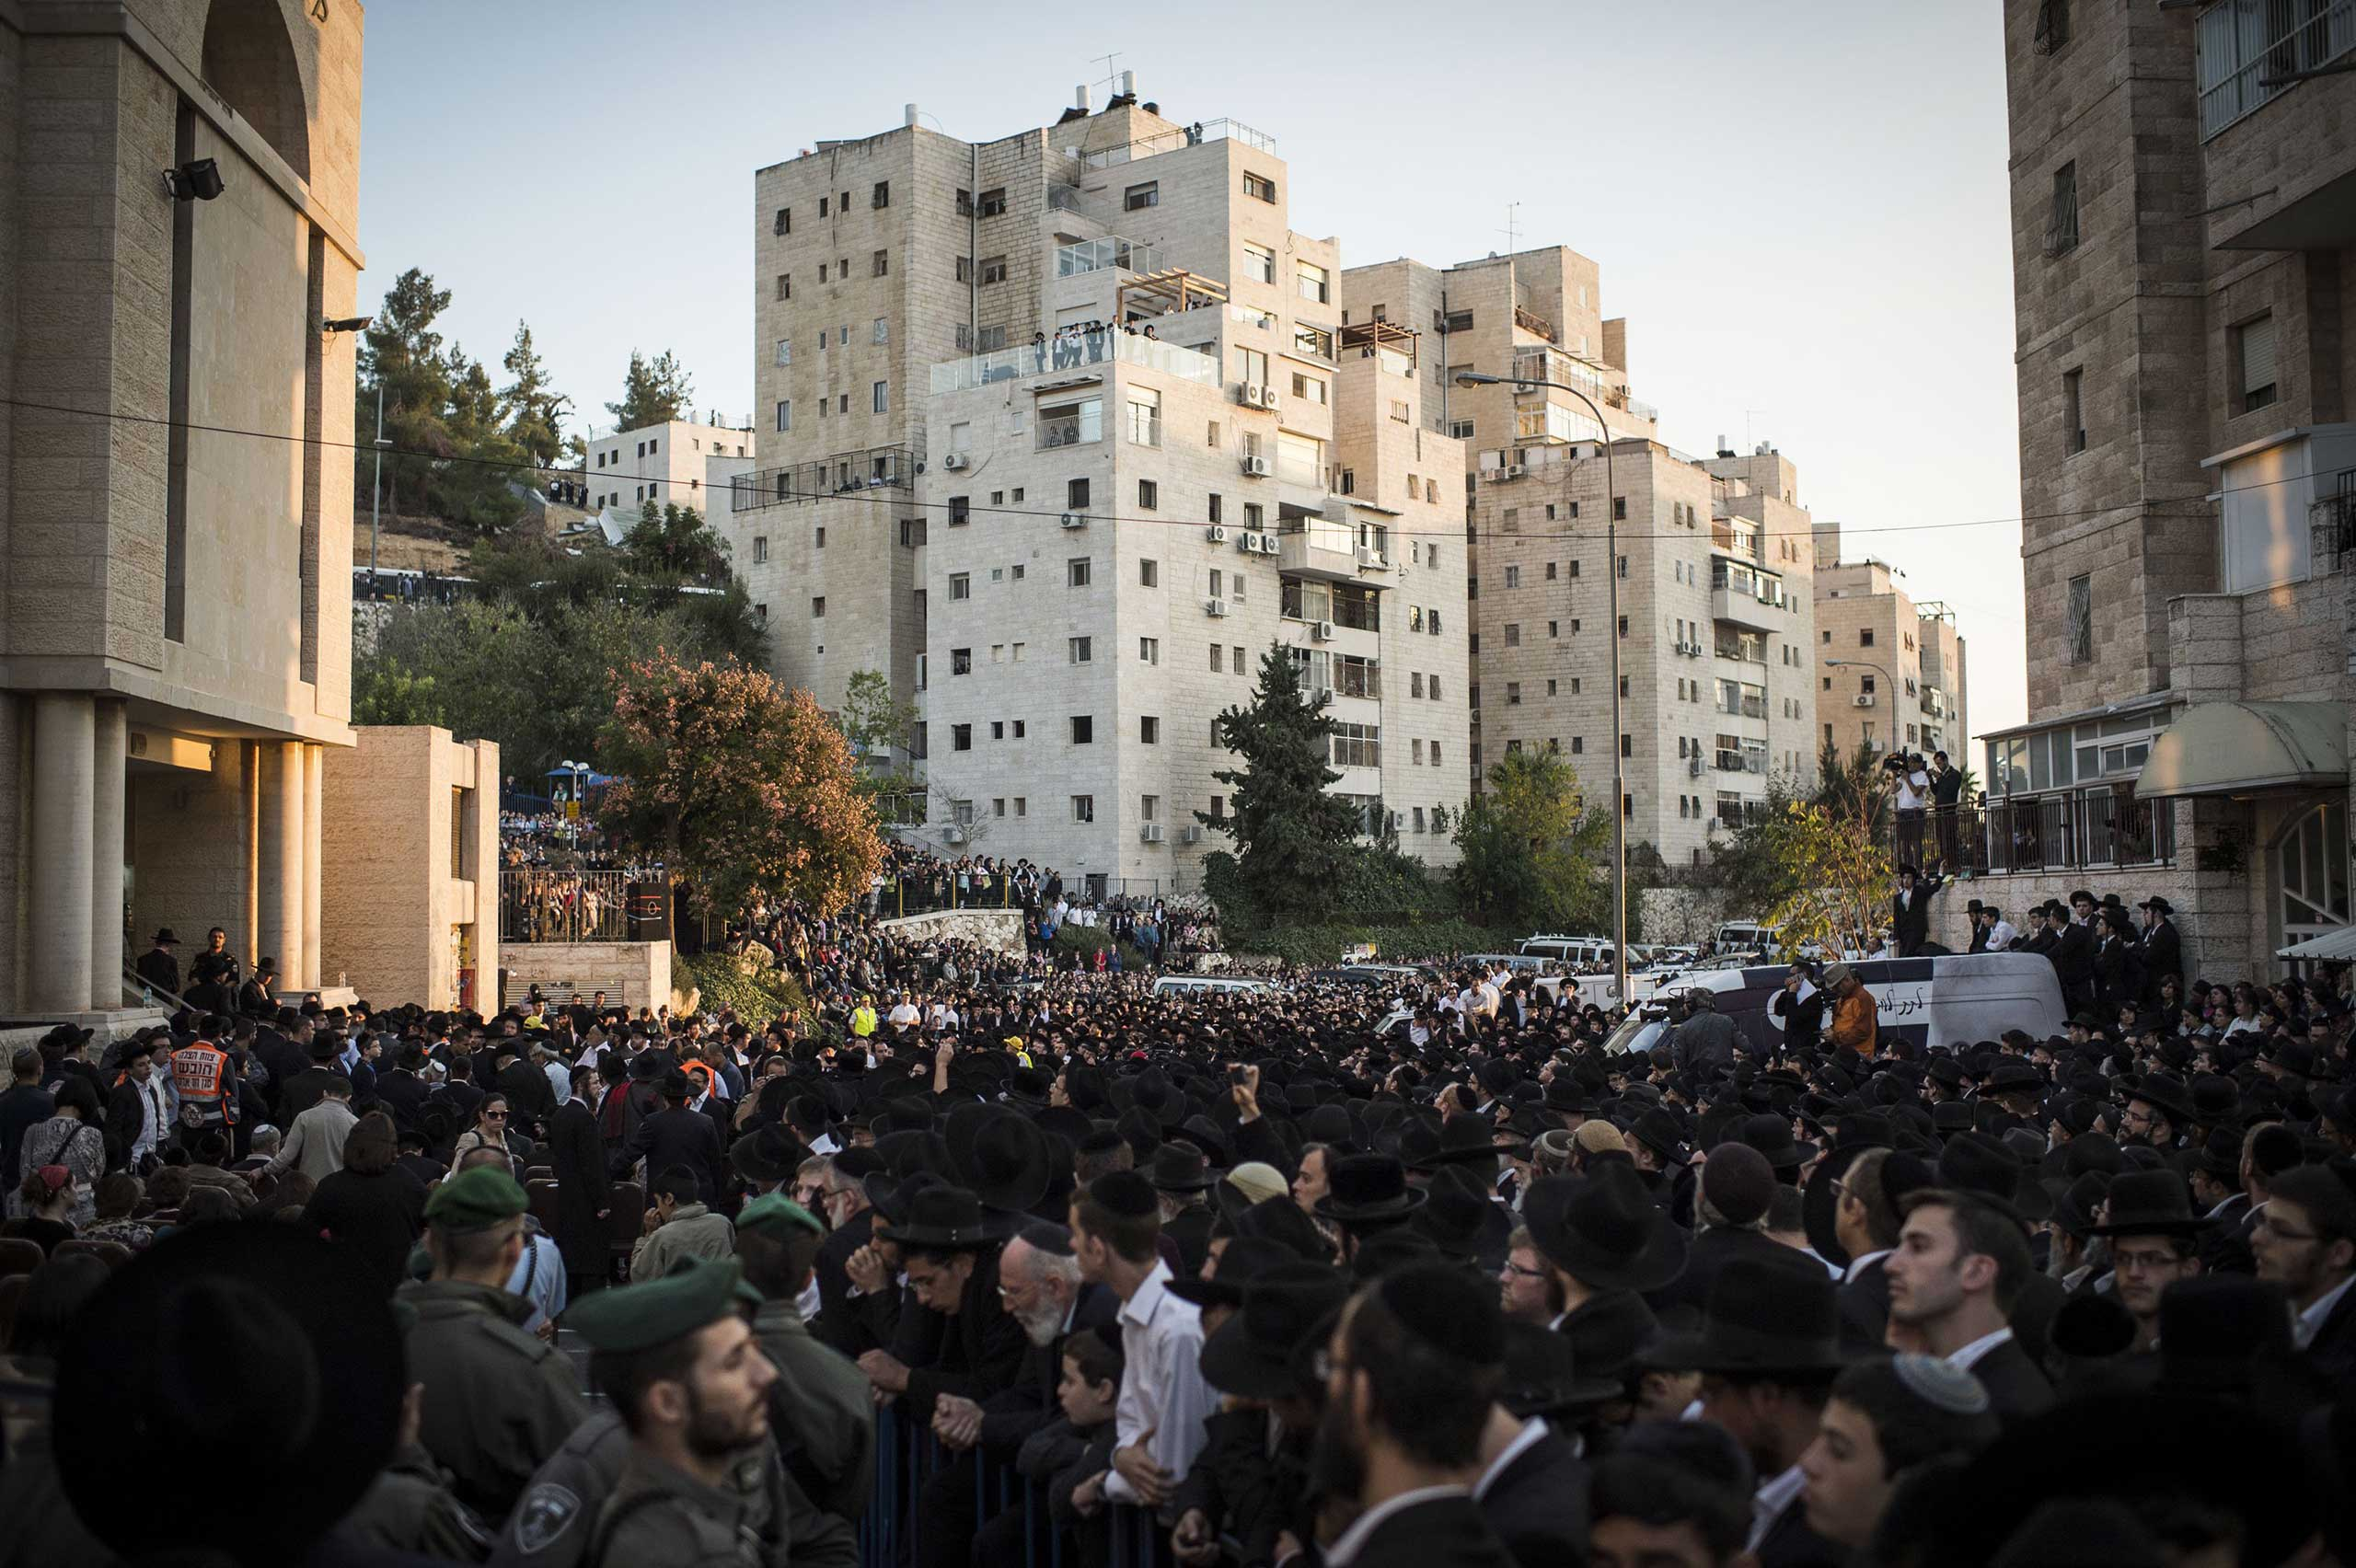 Mourners gather for the funerals of Rabbi Kalman Levine, Avraham Goldberg and Arieh Kupinsky in Jerusalem on Nov.18, 2014.